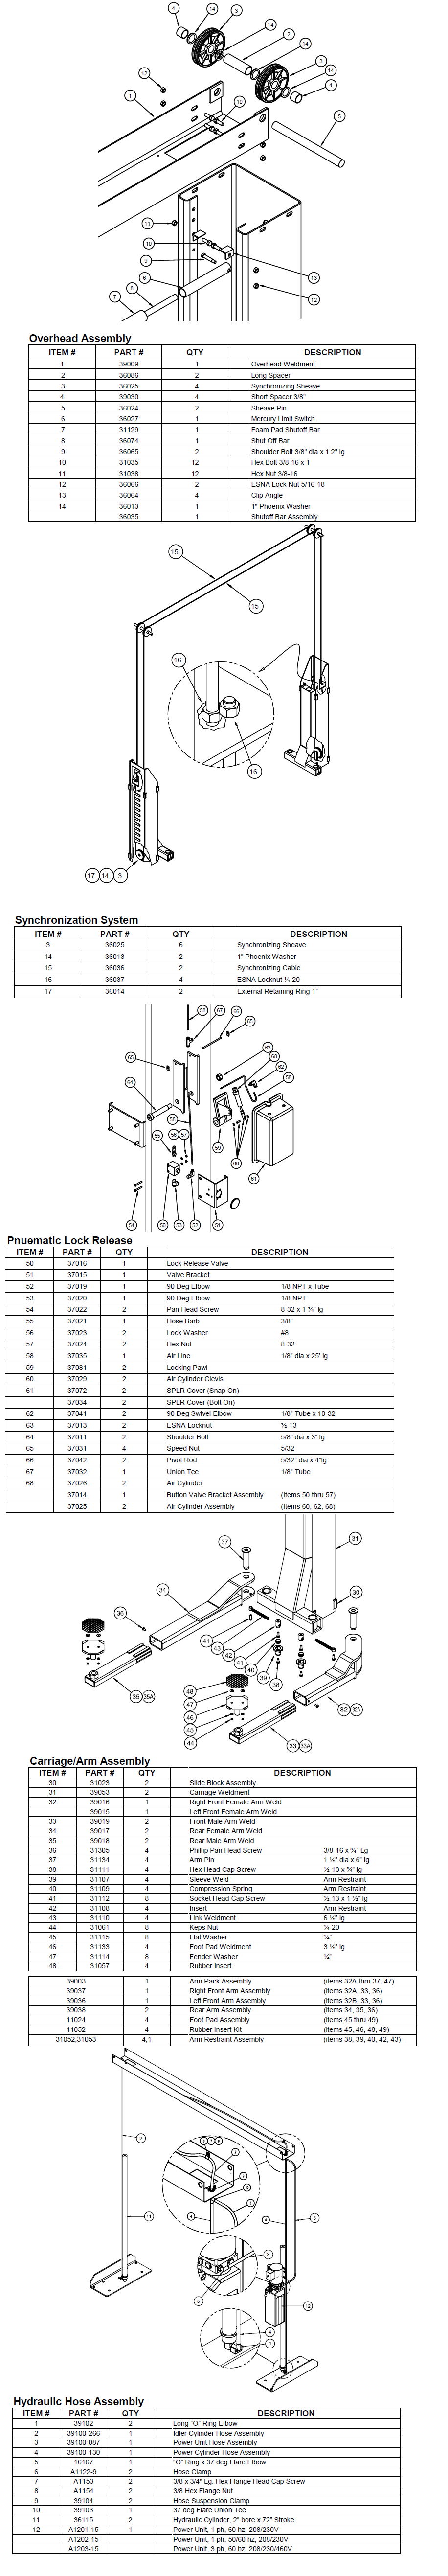 Parts Diagram For Challenger 39000 Lift Wiring